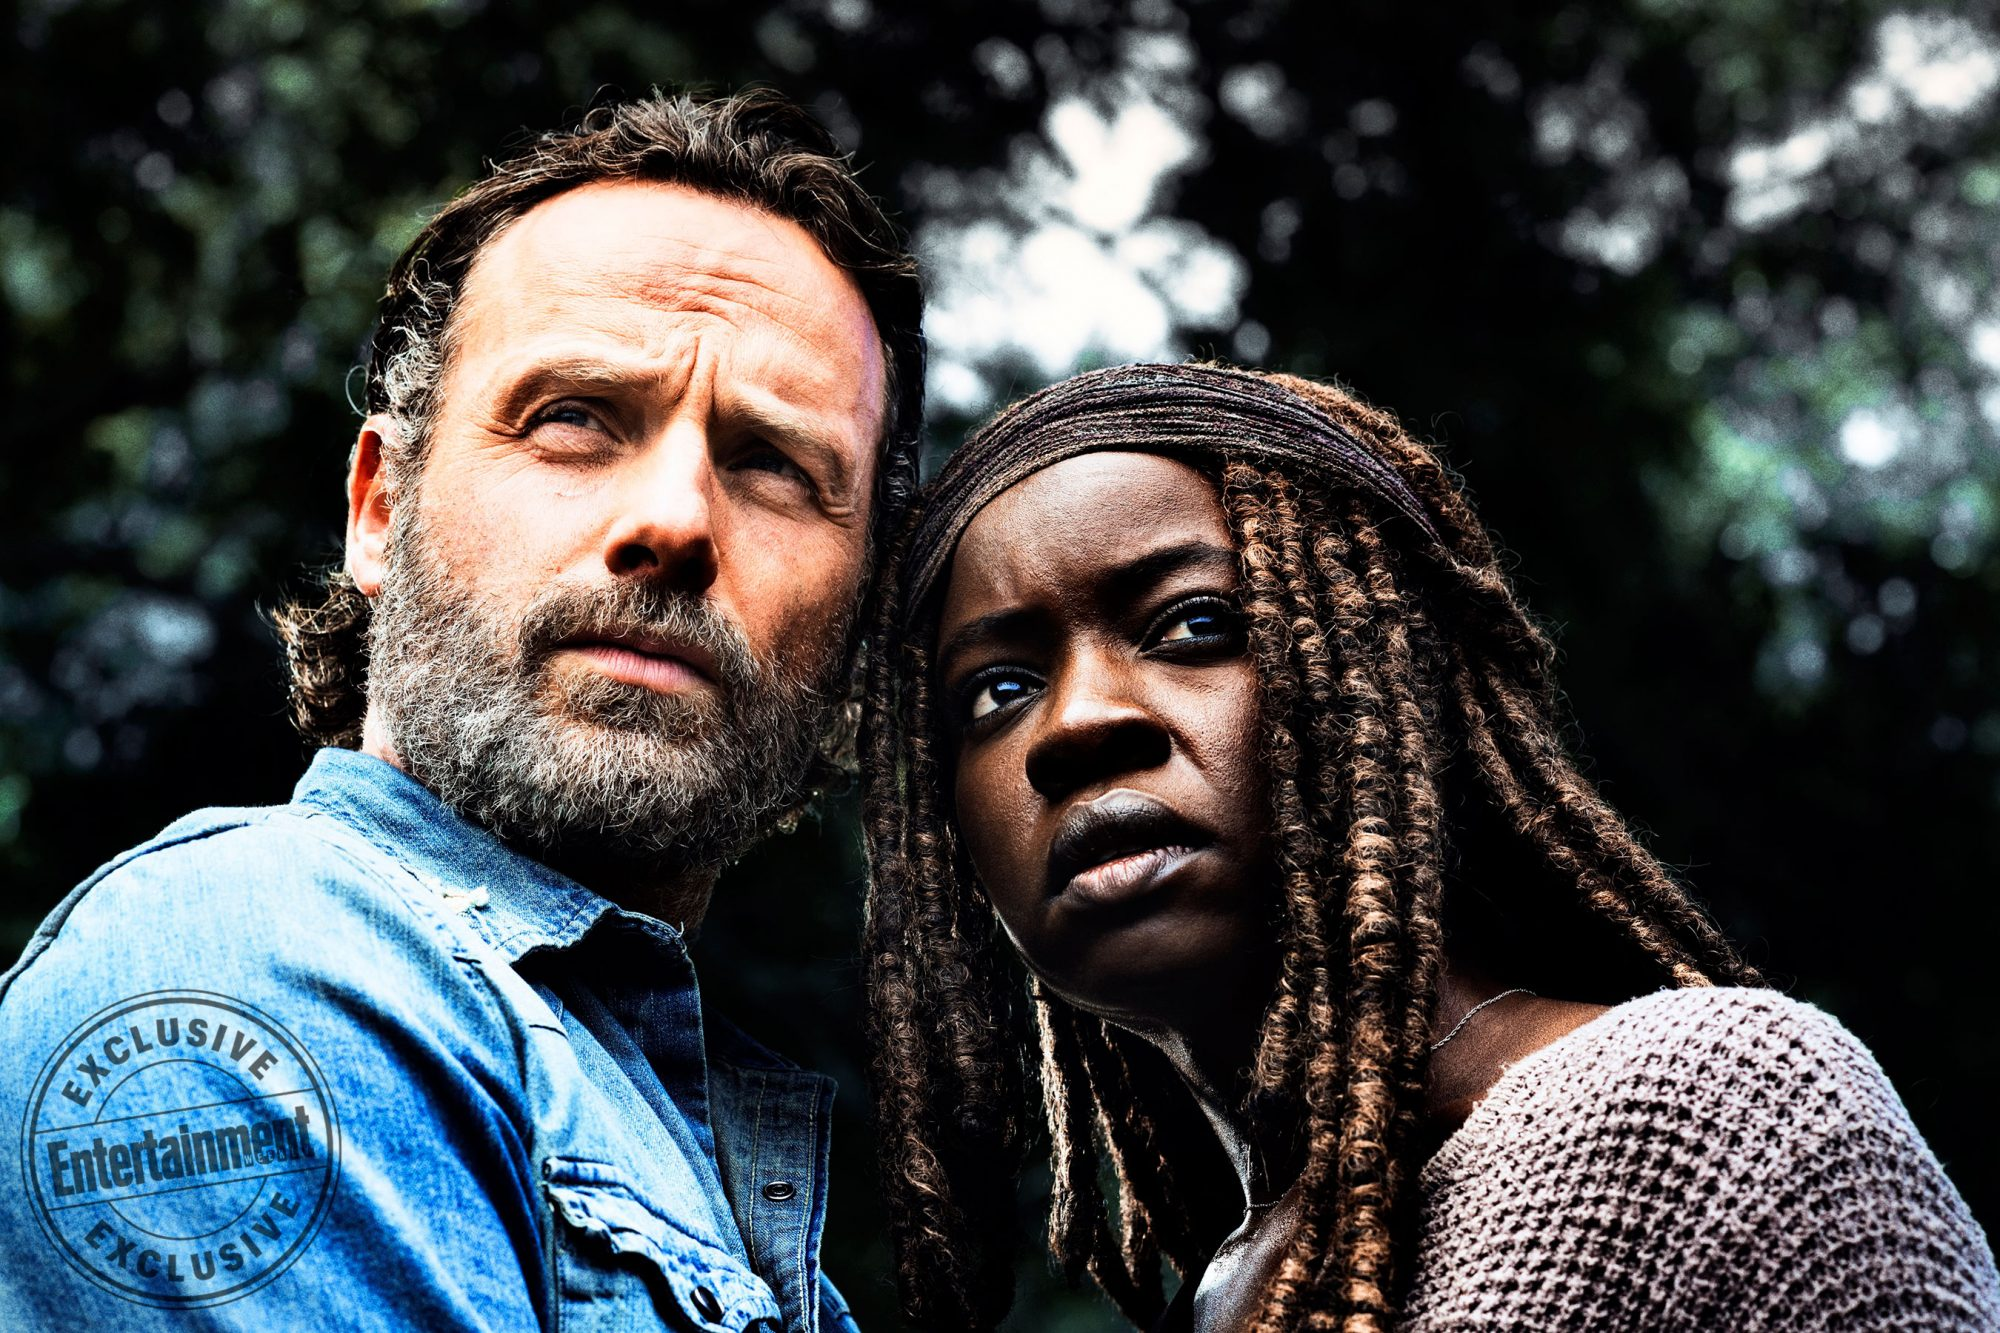 Andrew-Lincoln-as-Rick-Grimes,-Danai-Gurira-as-Michonne --The-Walking-Dead-_-Season-8,-Gallery---Photo-Credit-Alan-Clarke,-AMC_3